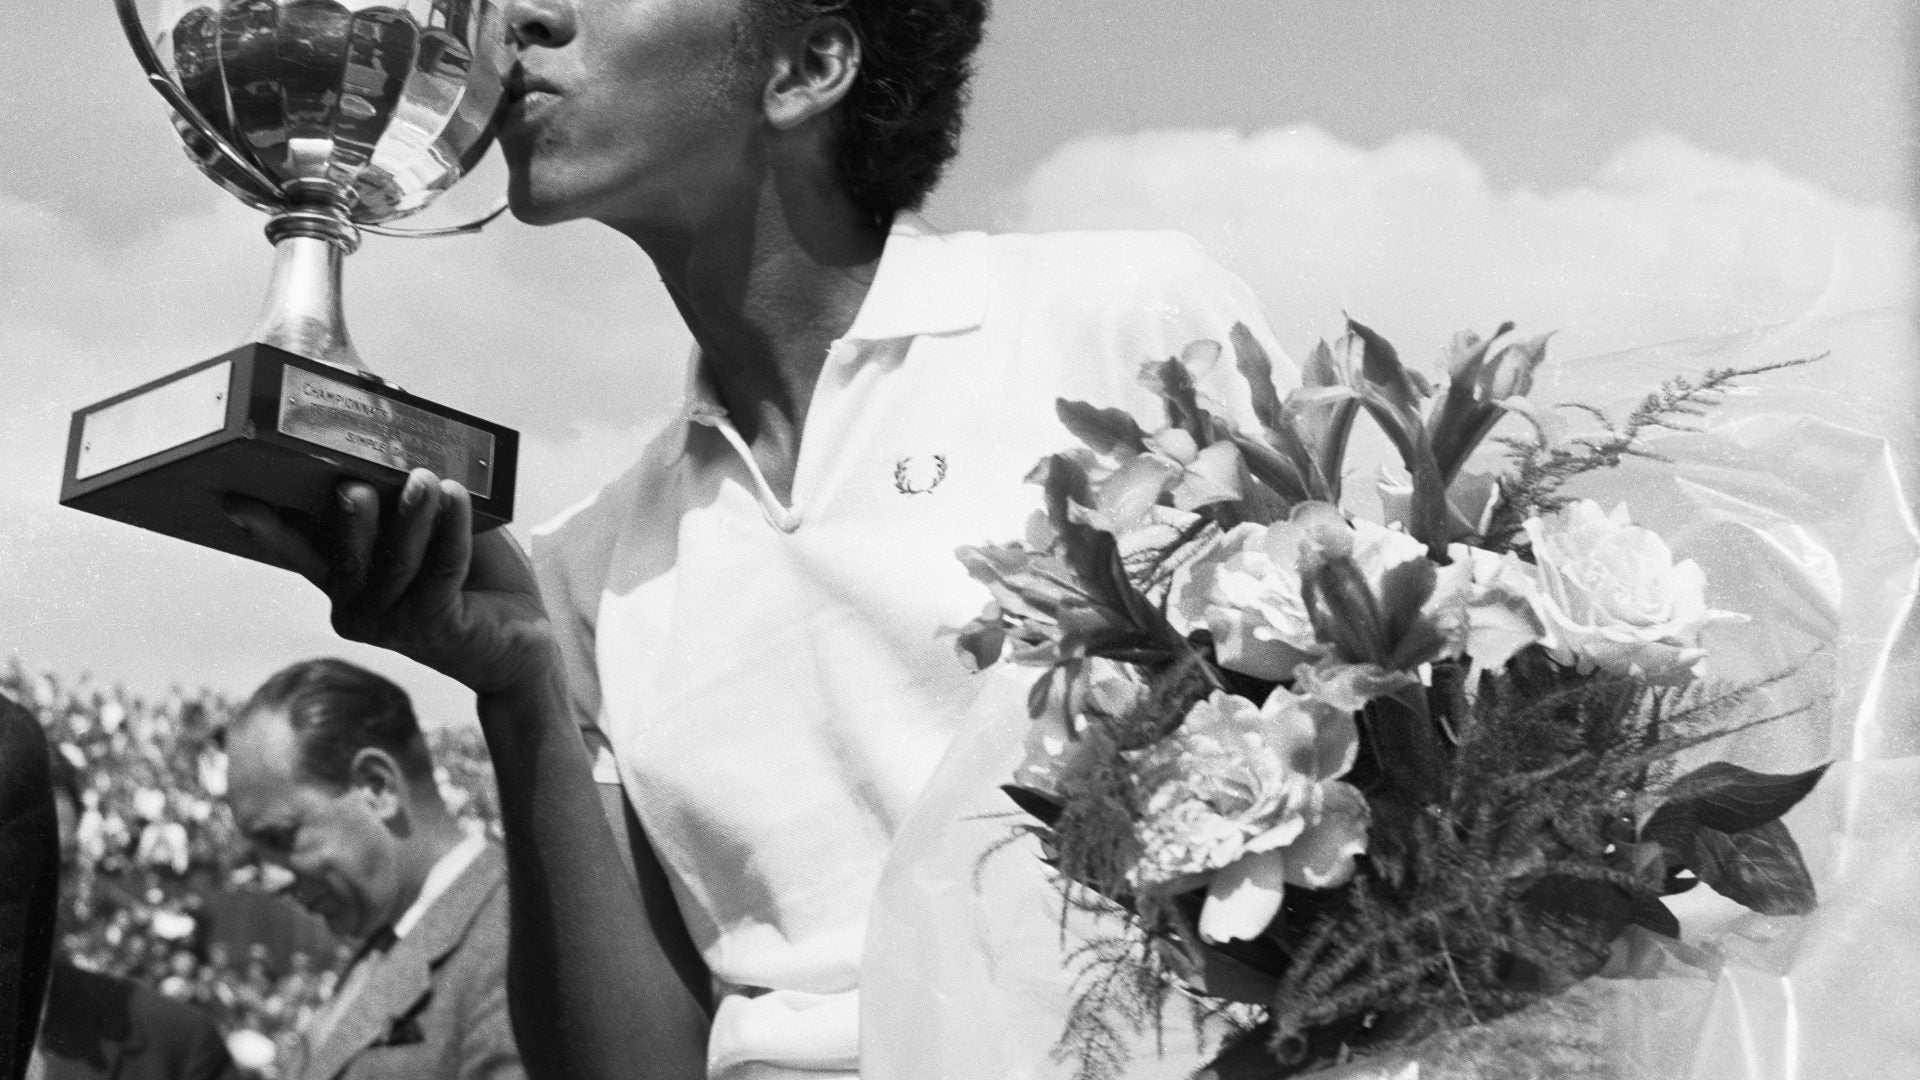 Tennis trailblazer Althea Gibson honored on first day of U.S. Open